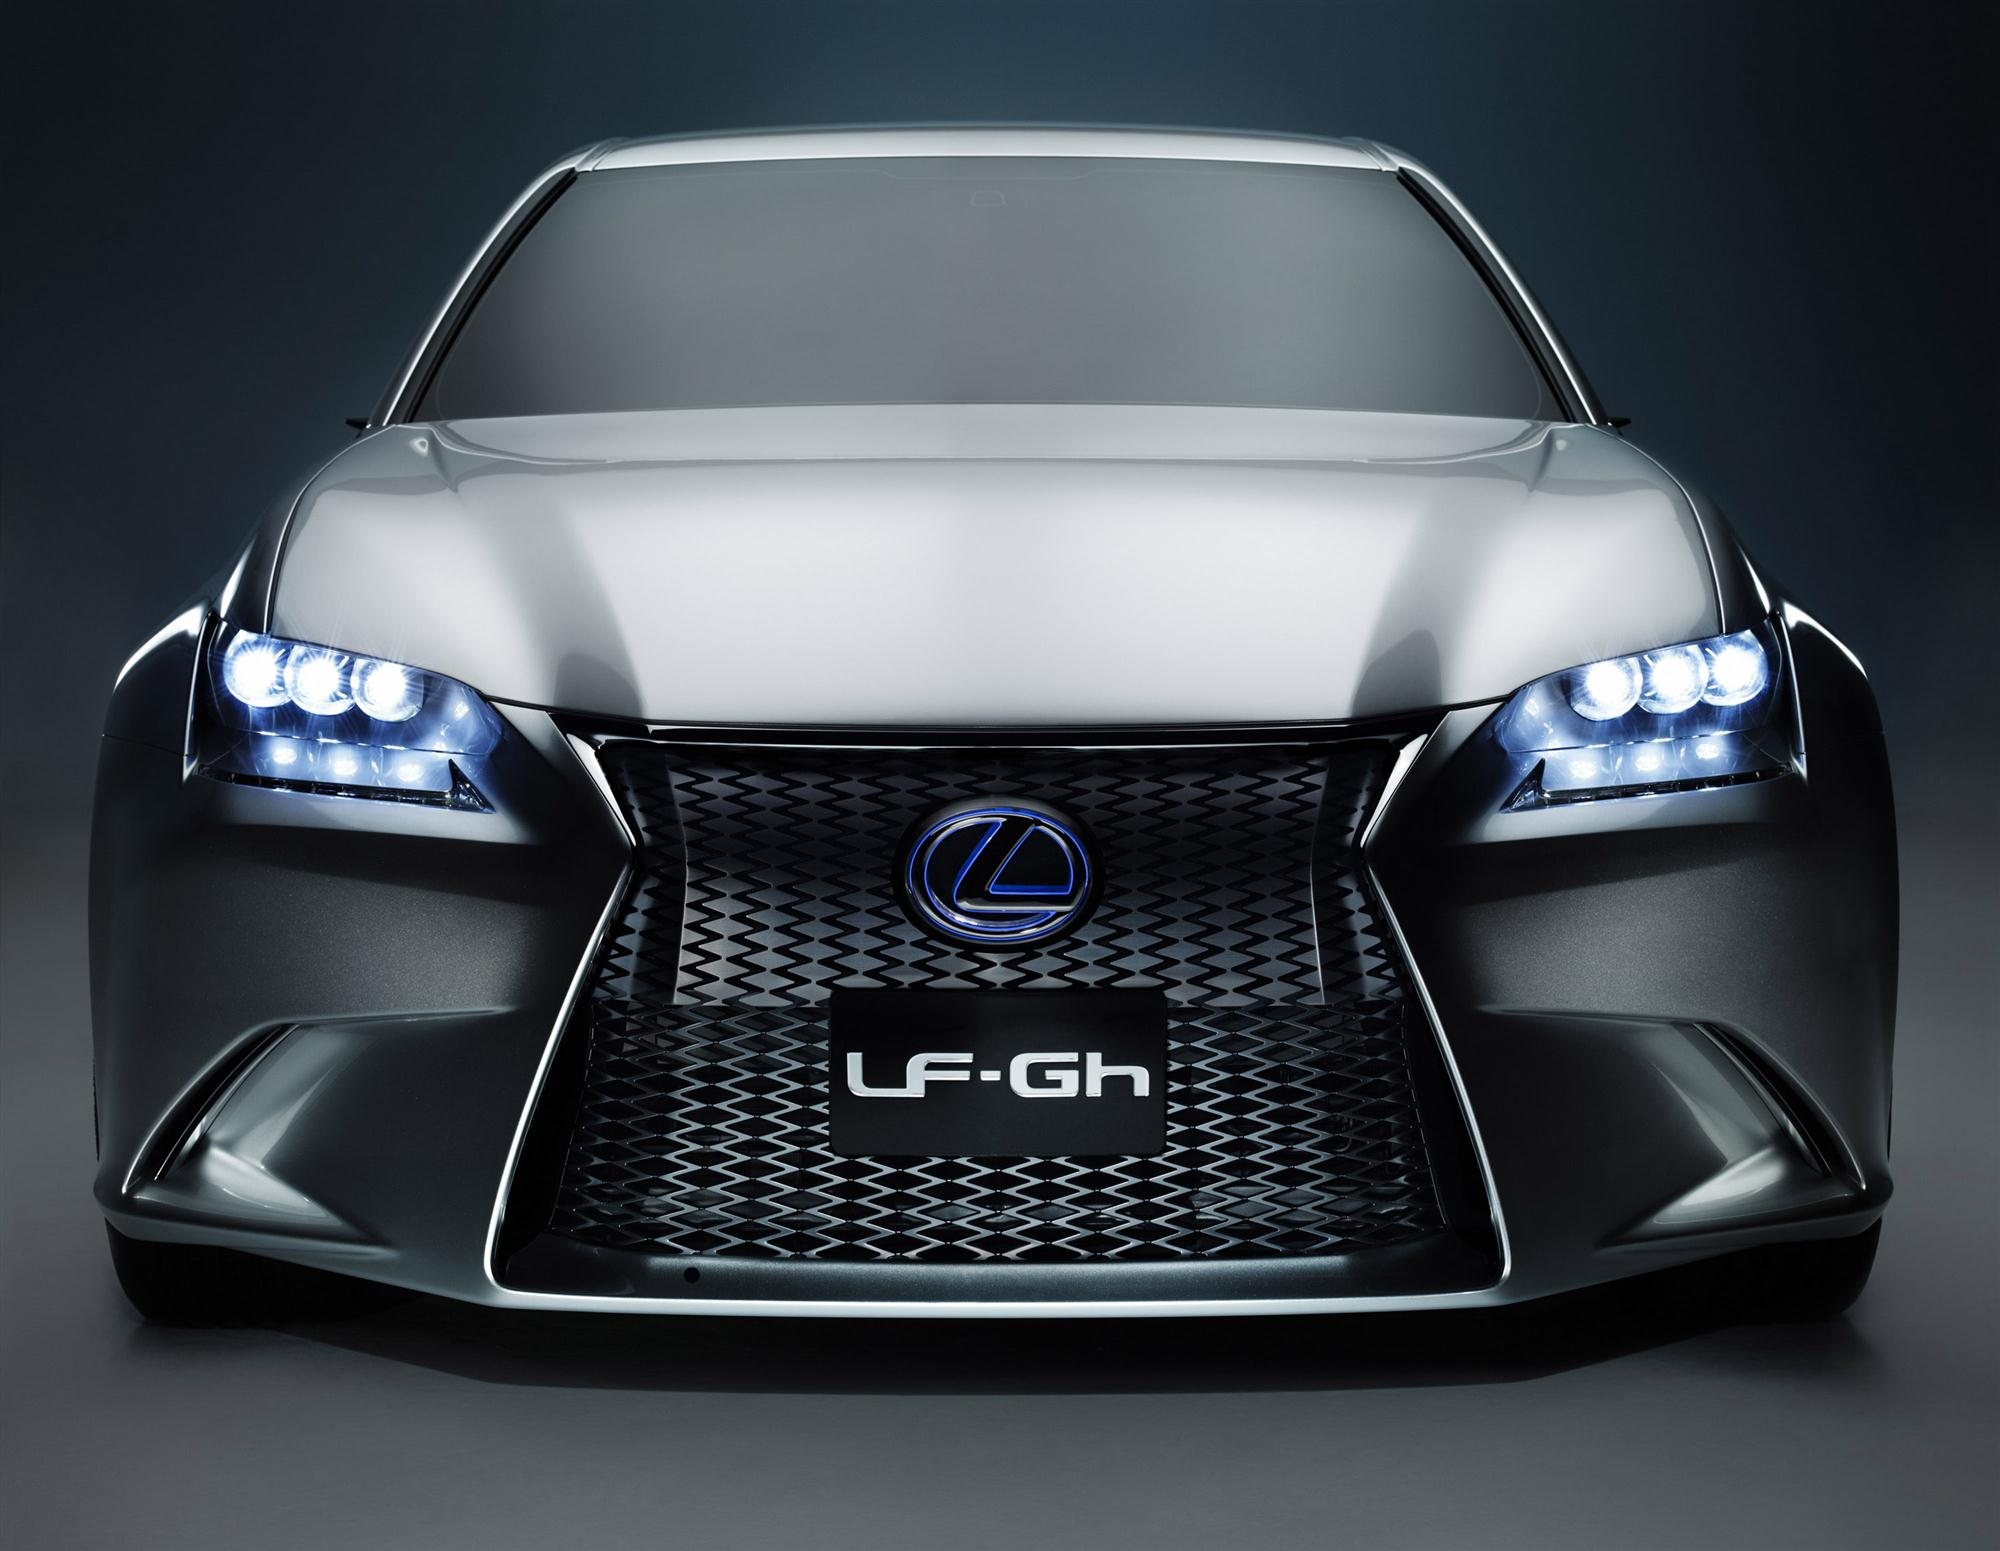 New GS Hybrid To Be First Lexus With All-LED Headlights